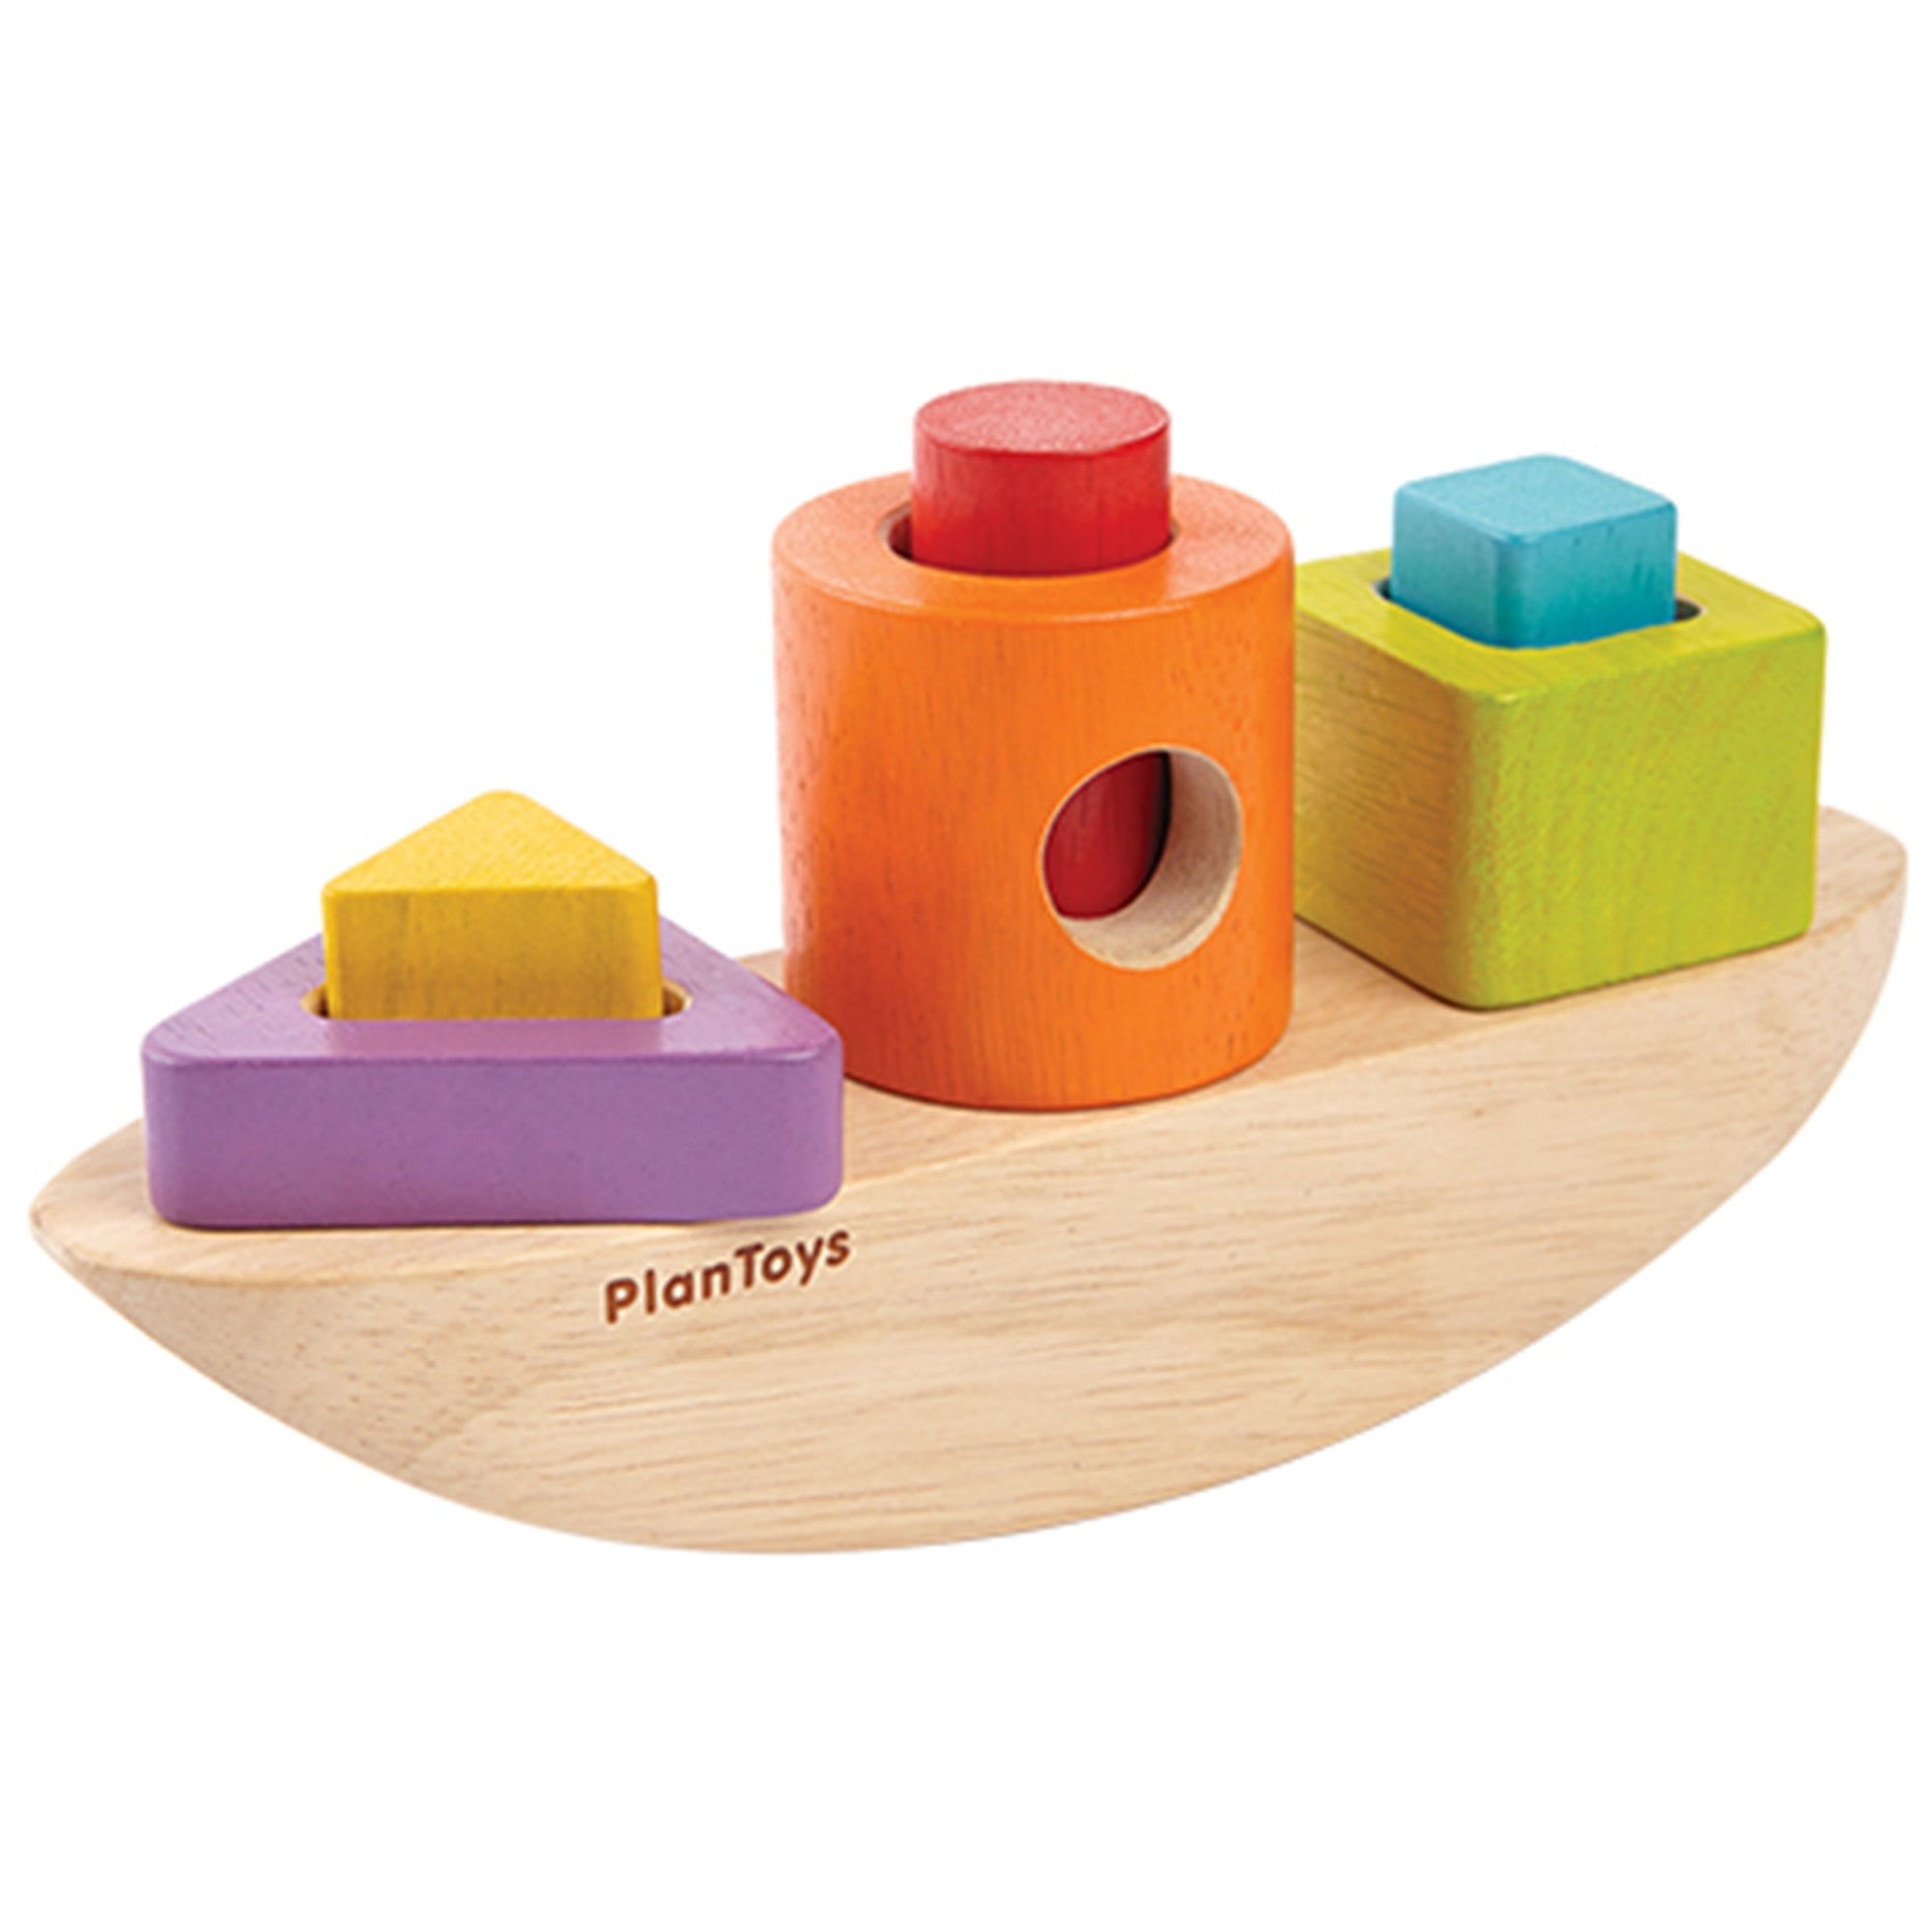 Shop For Plan Toys Wooden Toys In Australia Little Earth Nest